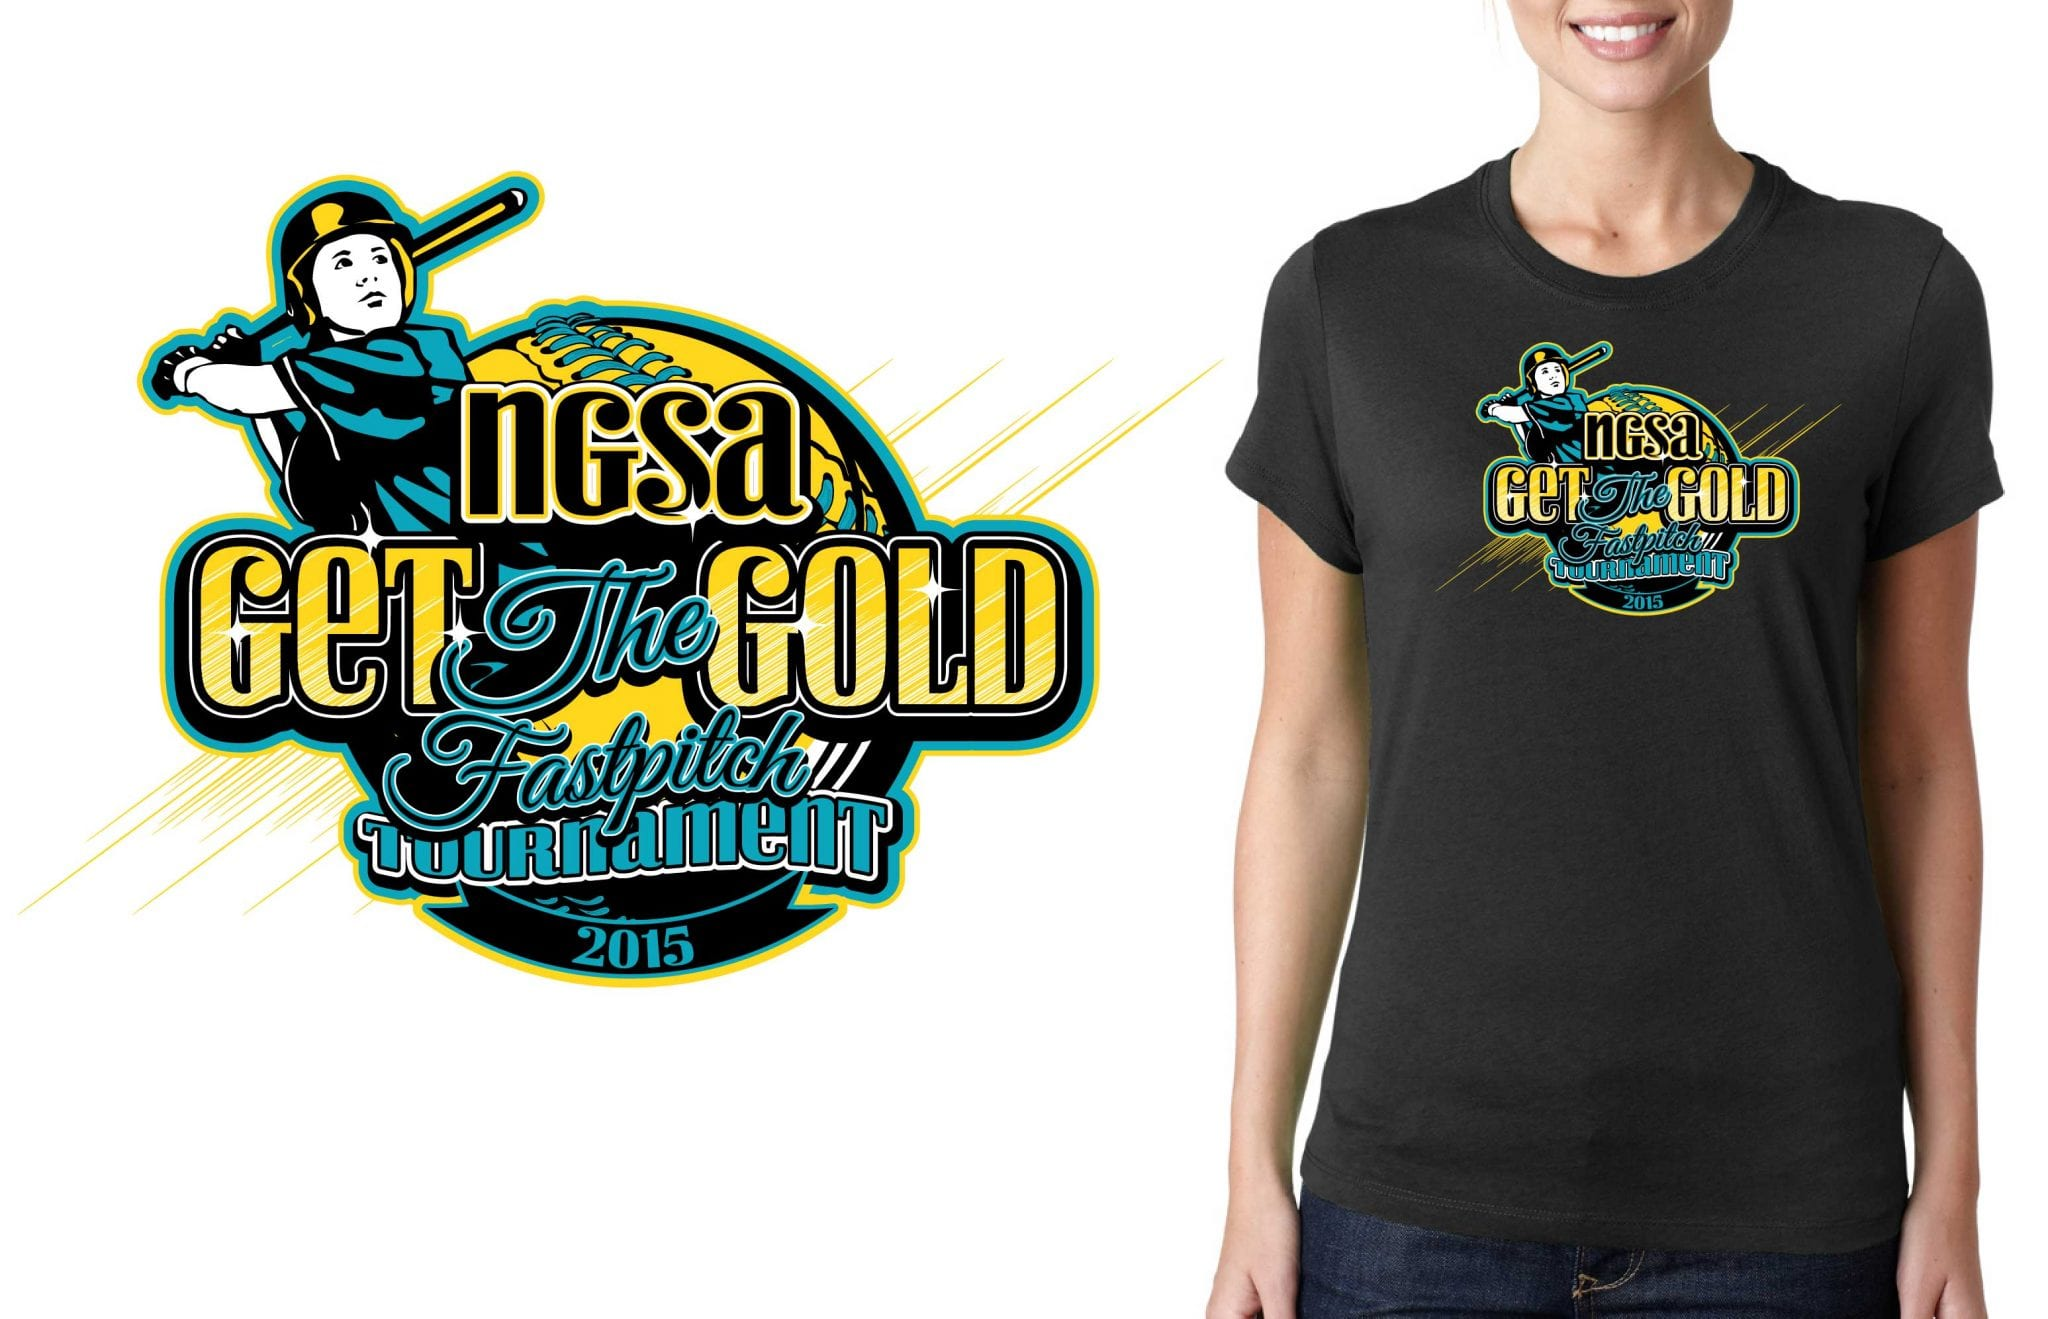 2015 NGSA Get the Gold ASA Tournament PRINT READY